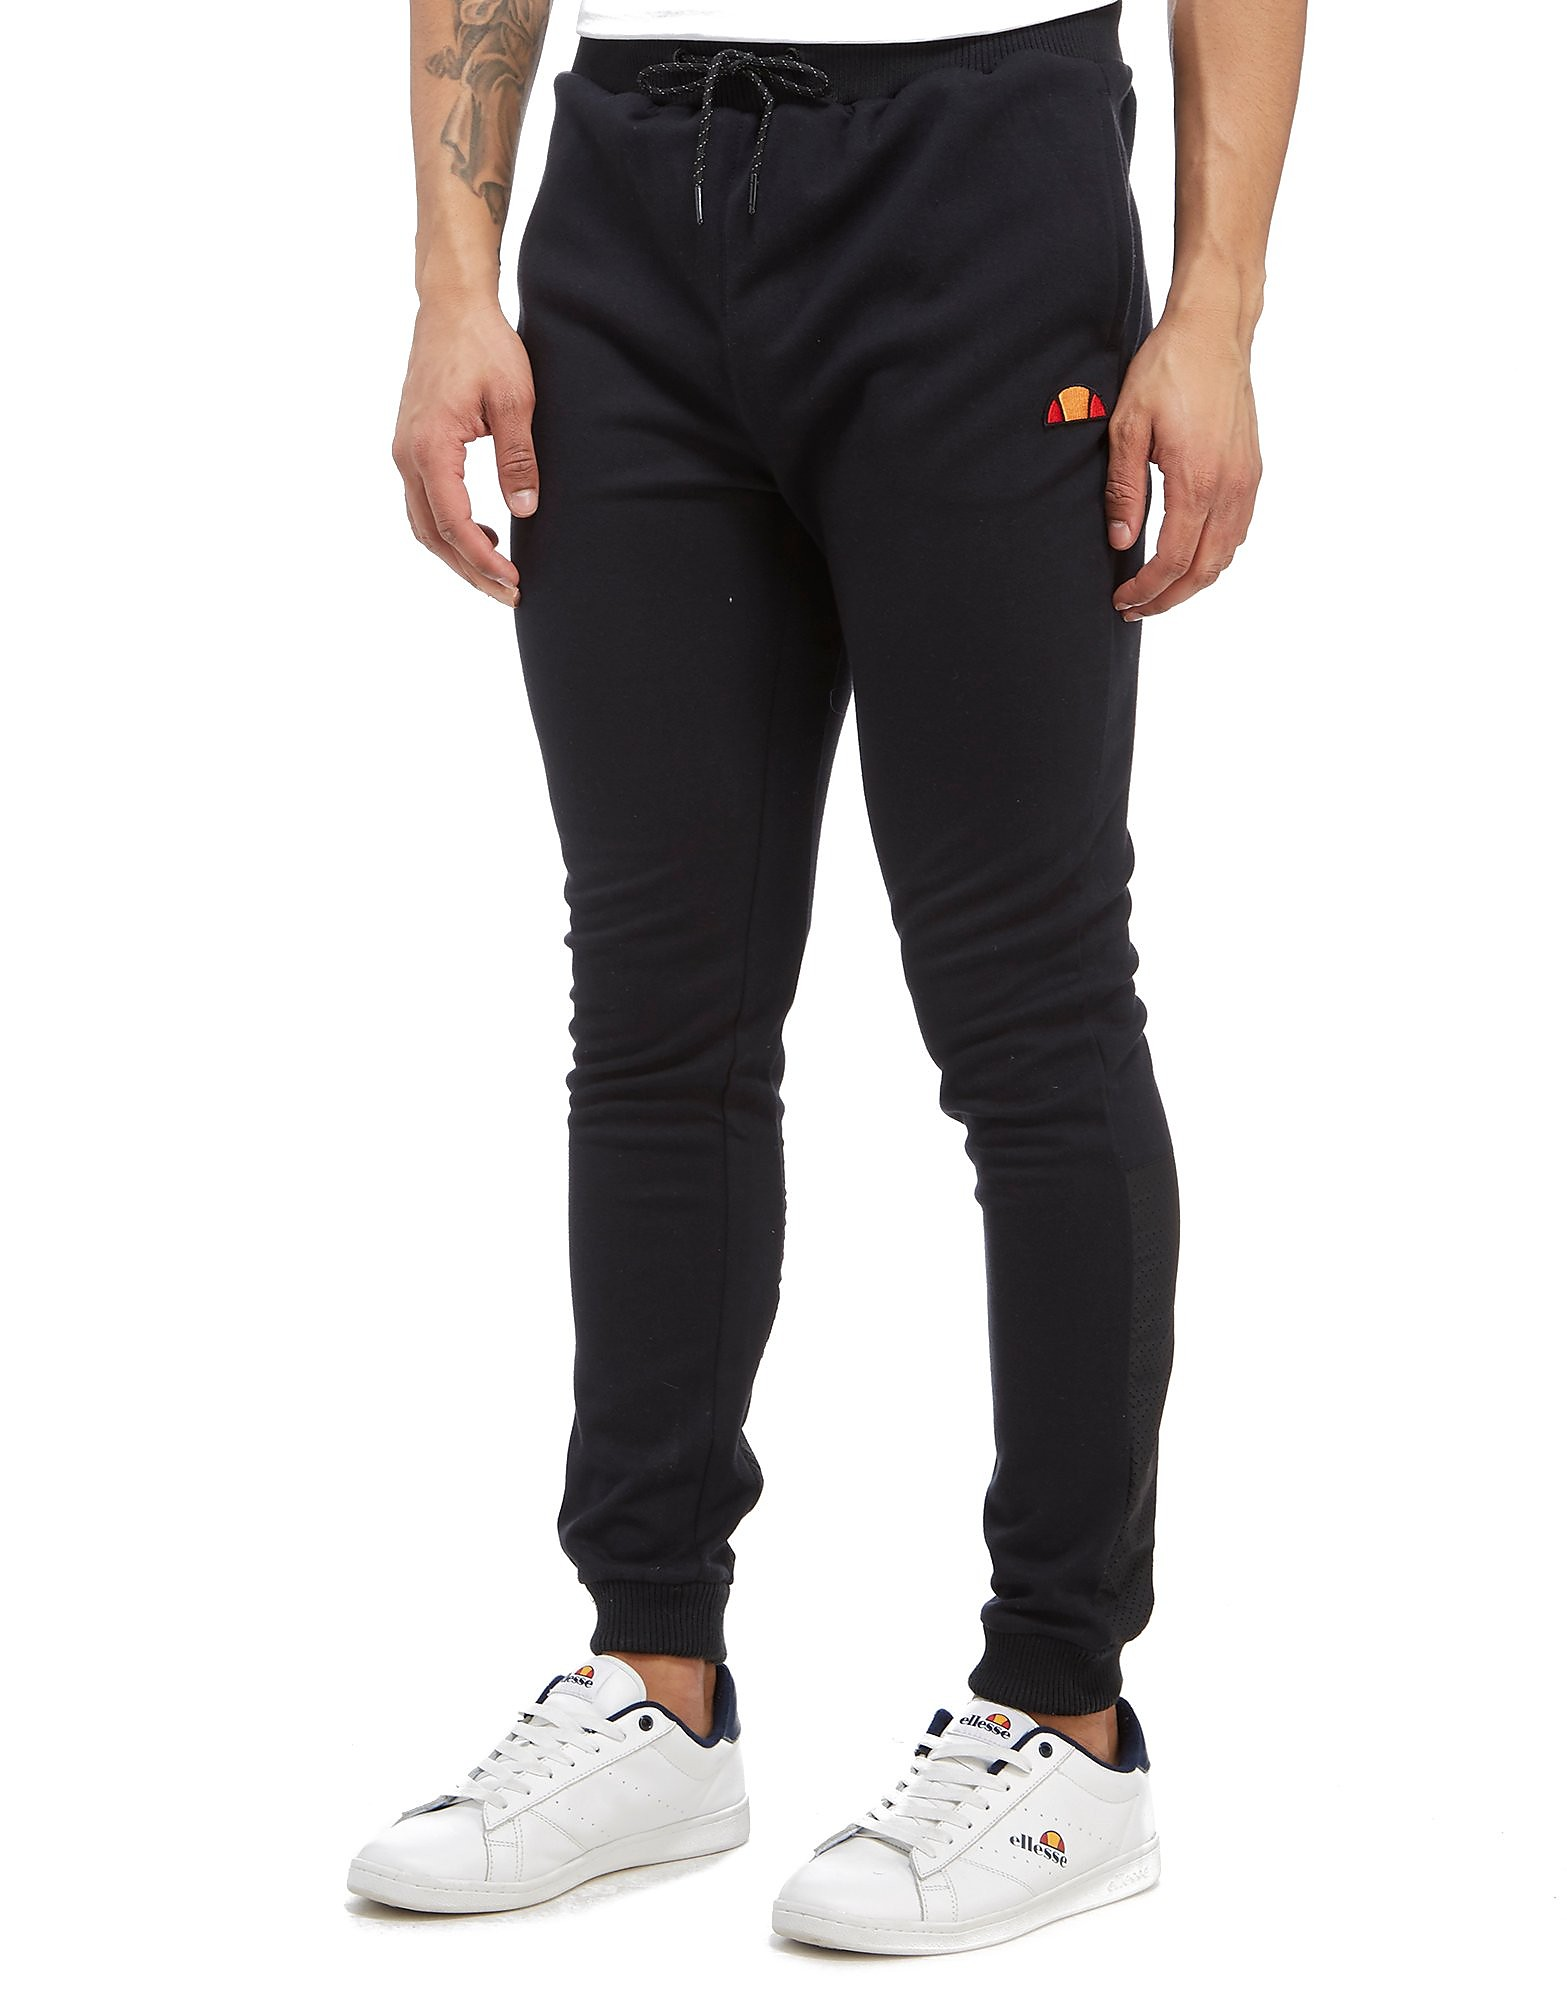 Ellesse Helios Perforated Pants